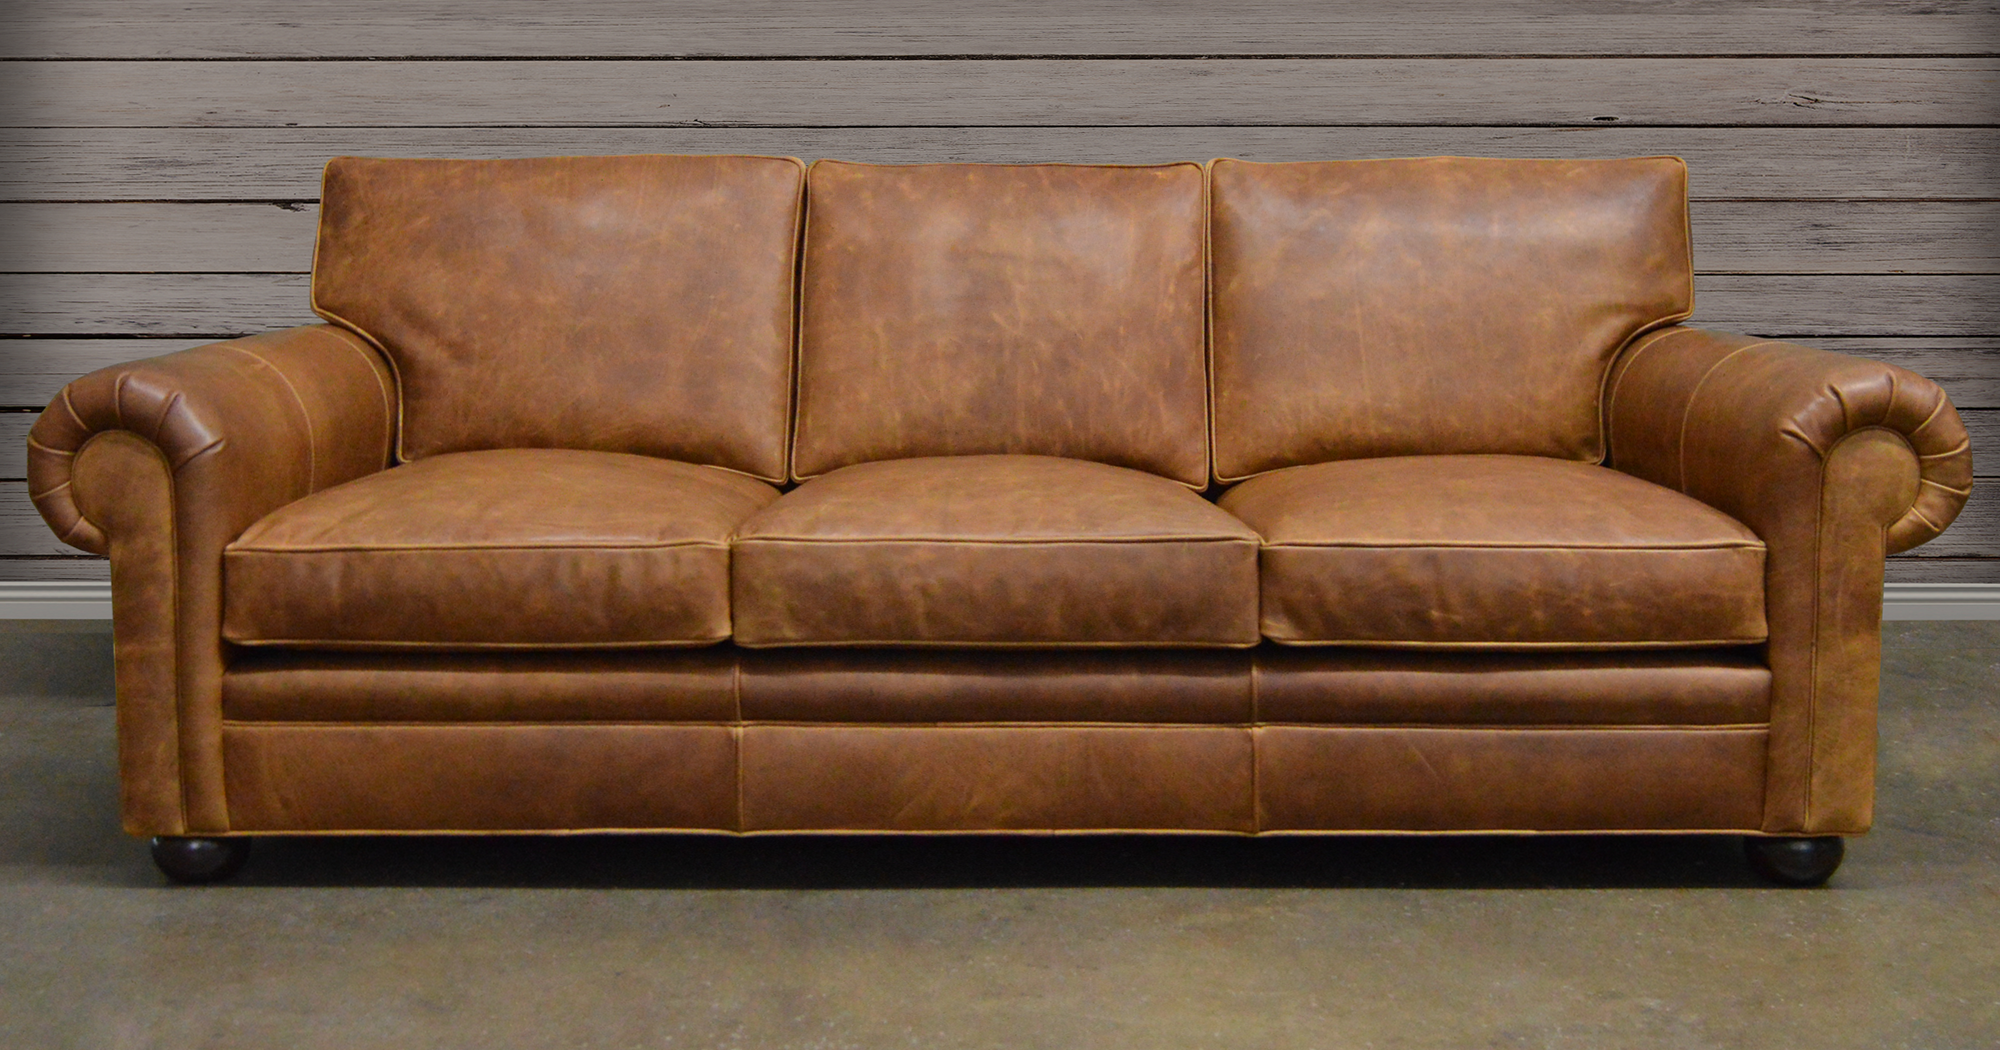 - American Made Leather Furniture, Leather Sofas, Leather Chairs